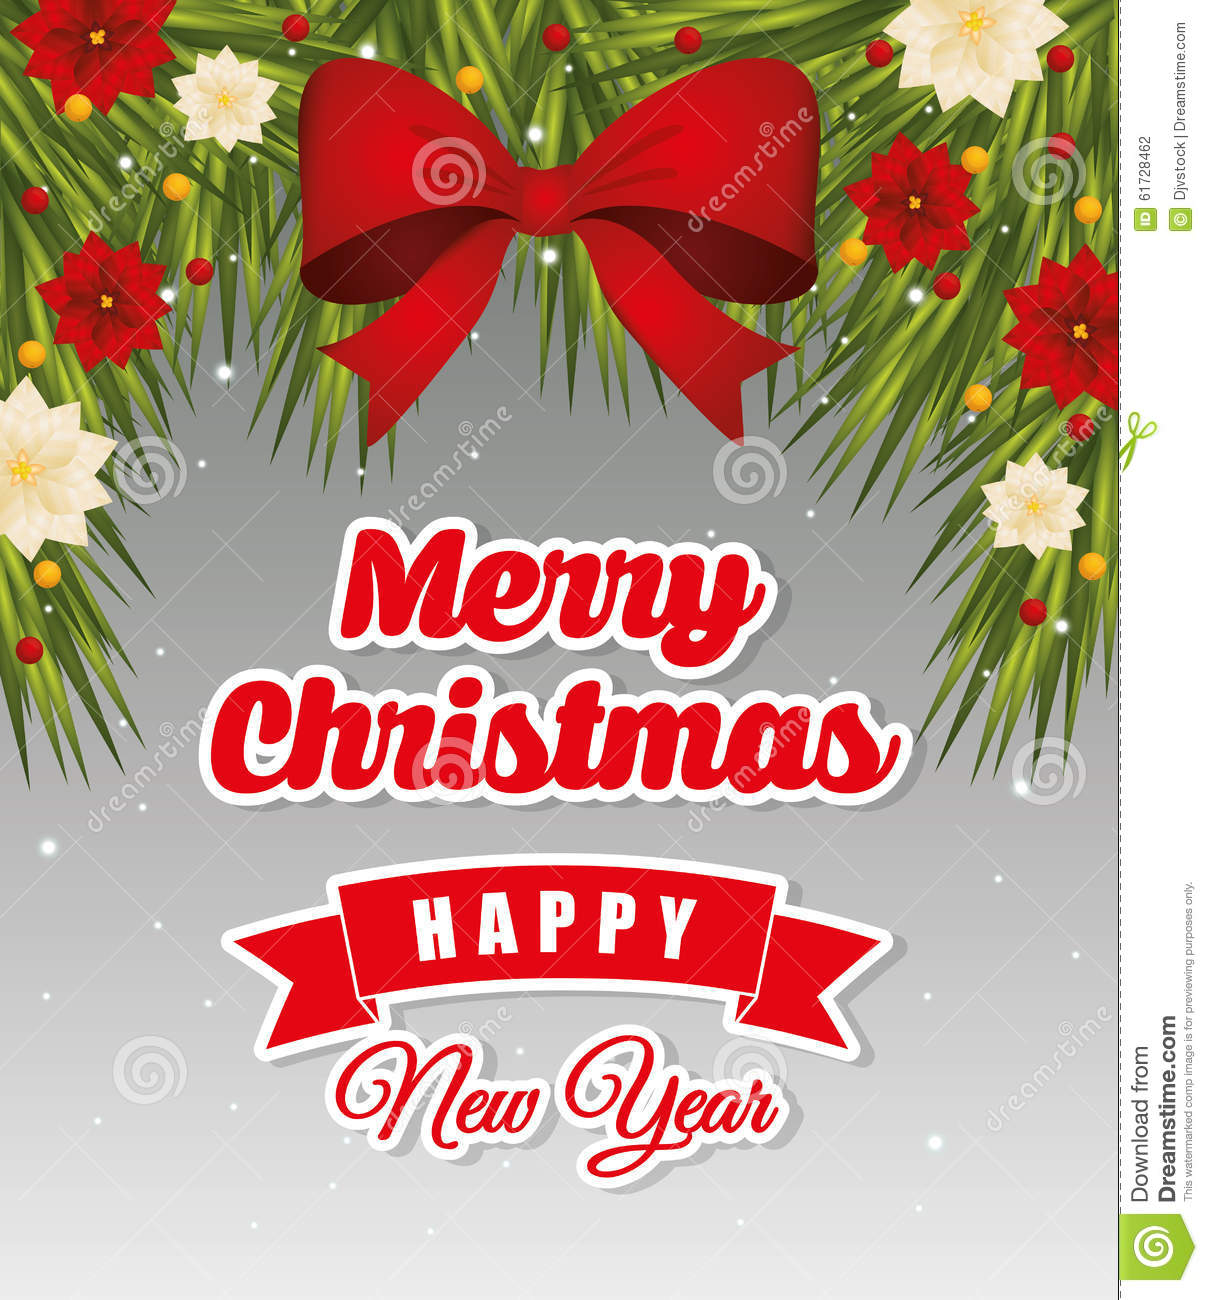 Christmas Card Design.Happy Holidays And Merry Christmas Card Design Stock Vector